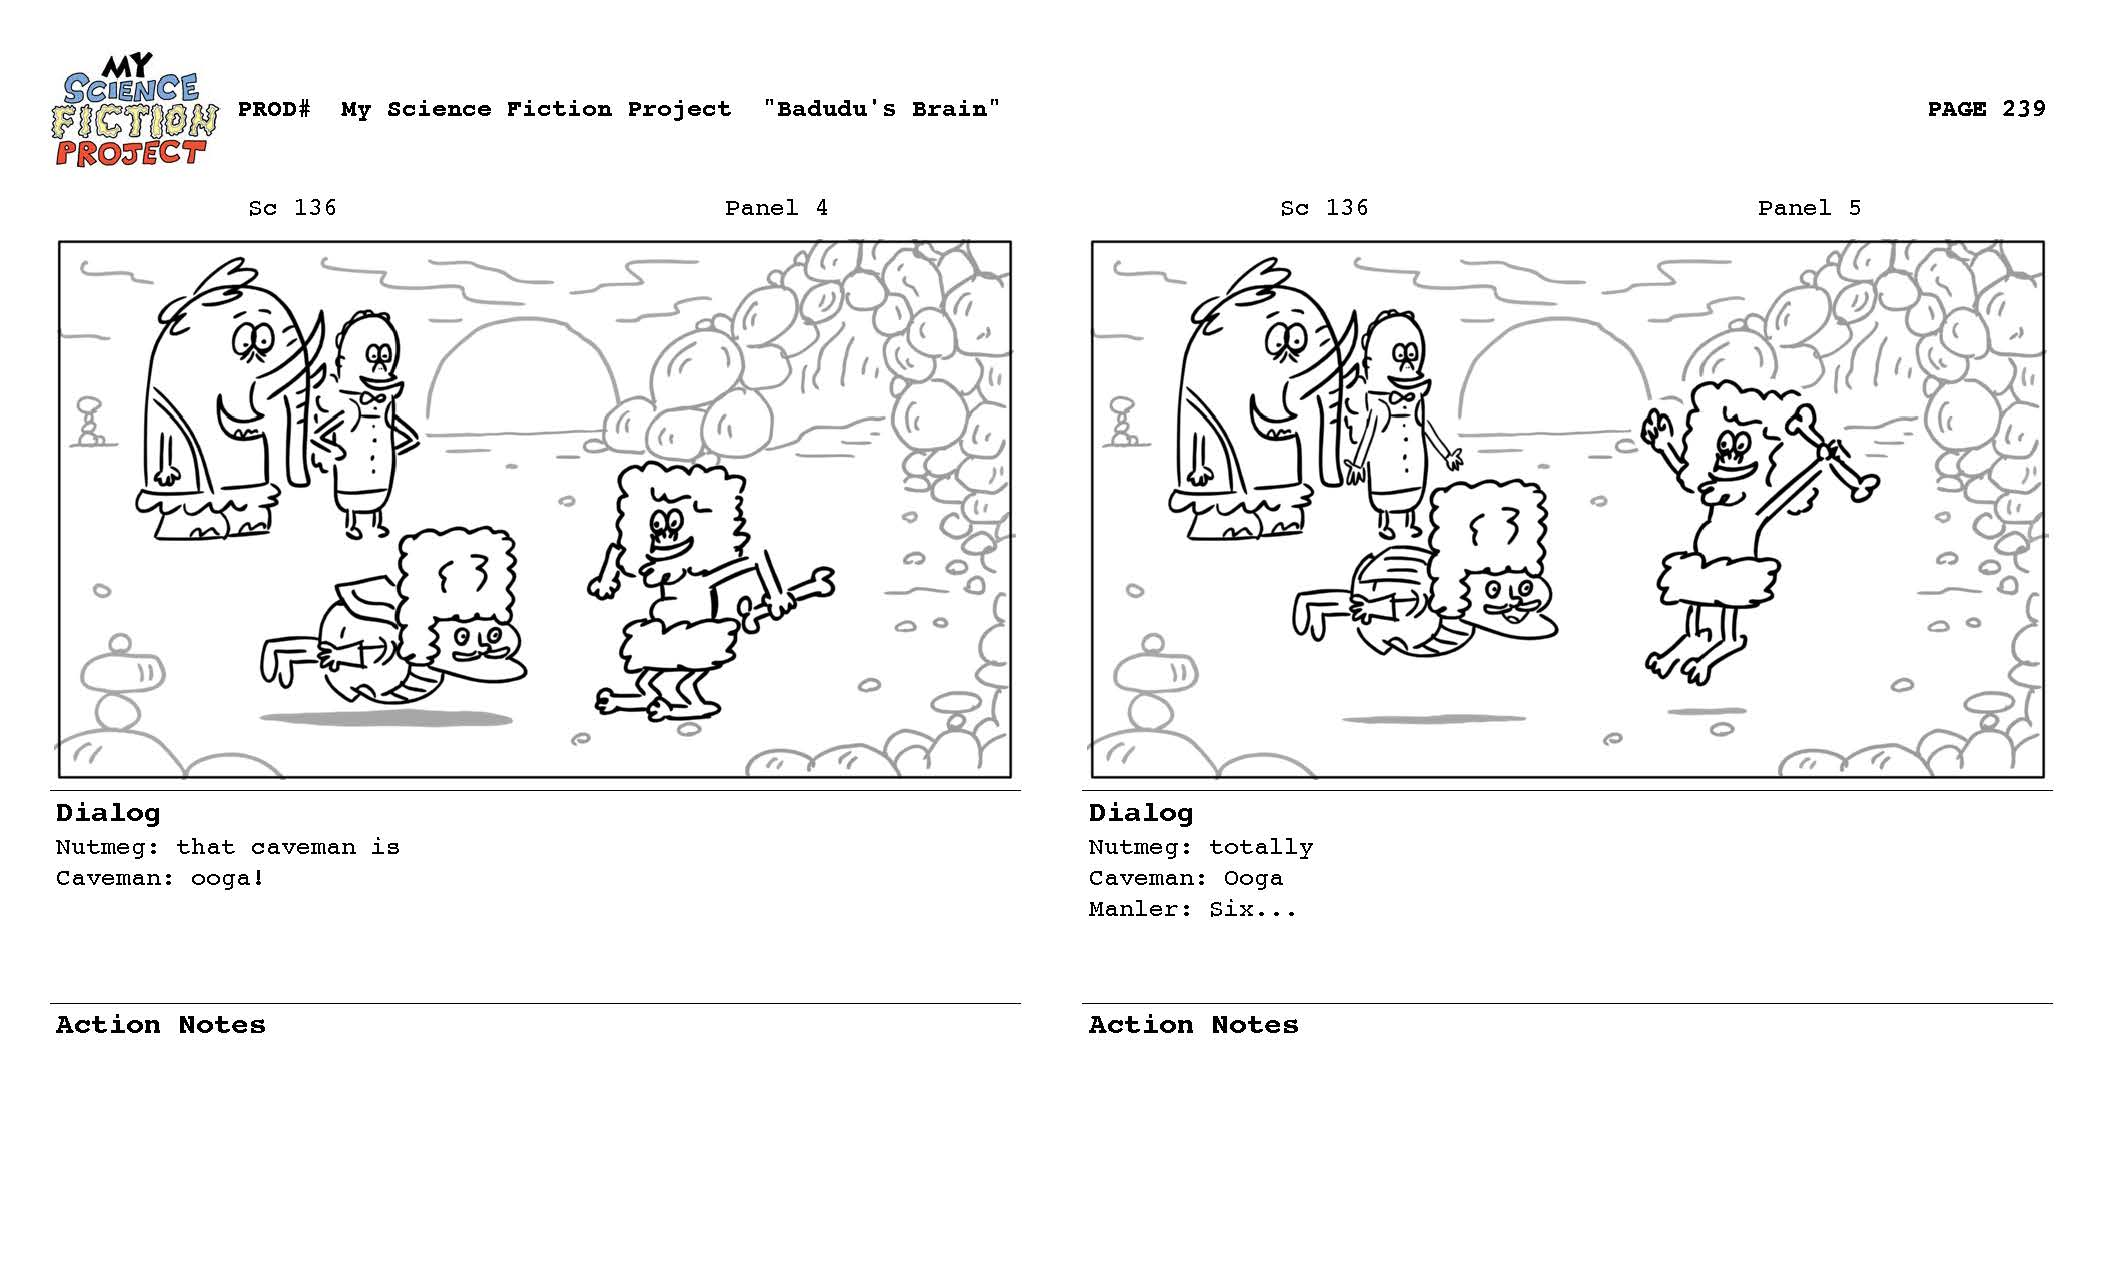 My_Science_Fiction_Project_SB_083112_reduced_Page_239.jpg